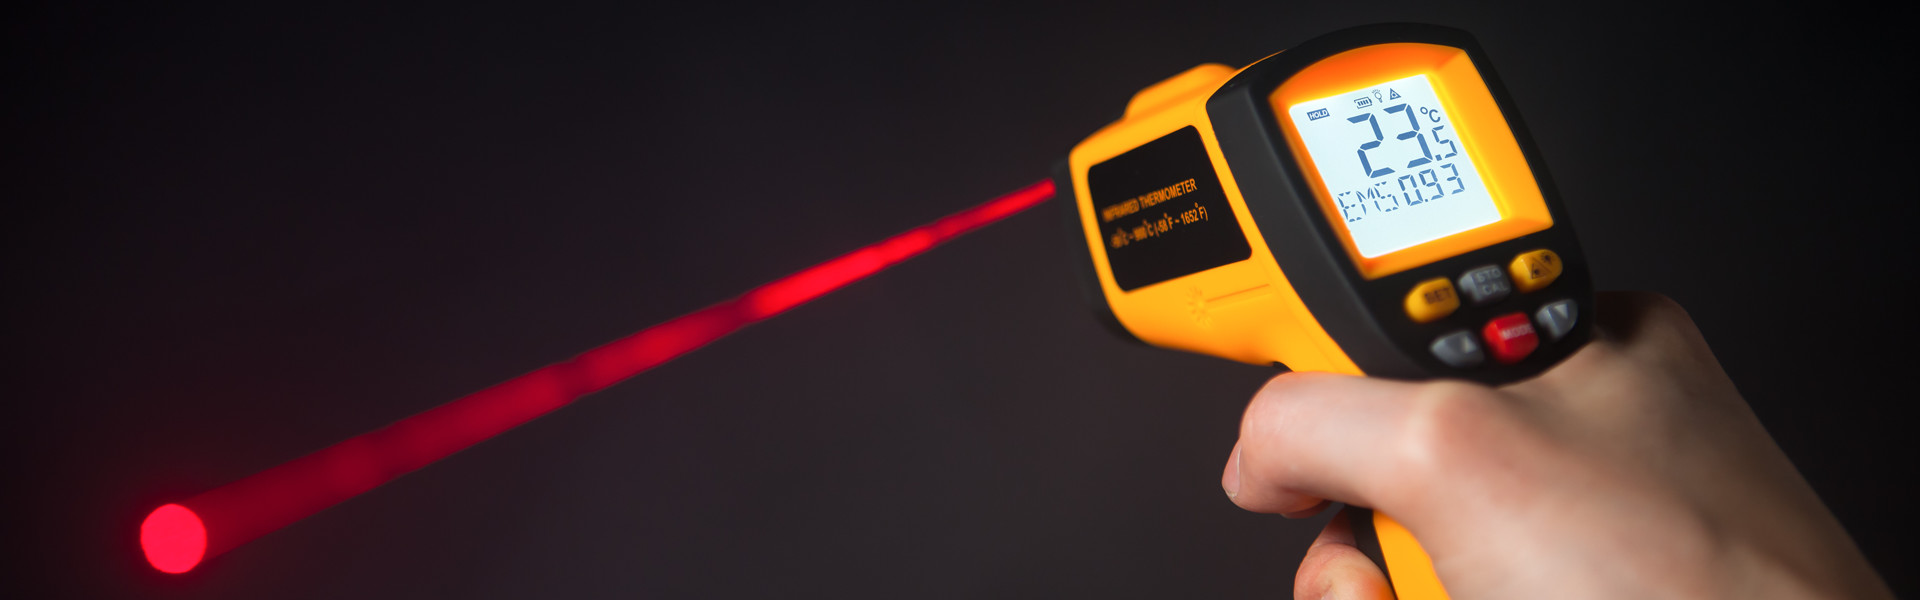 Infra red laser thermometer